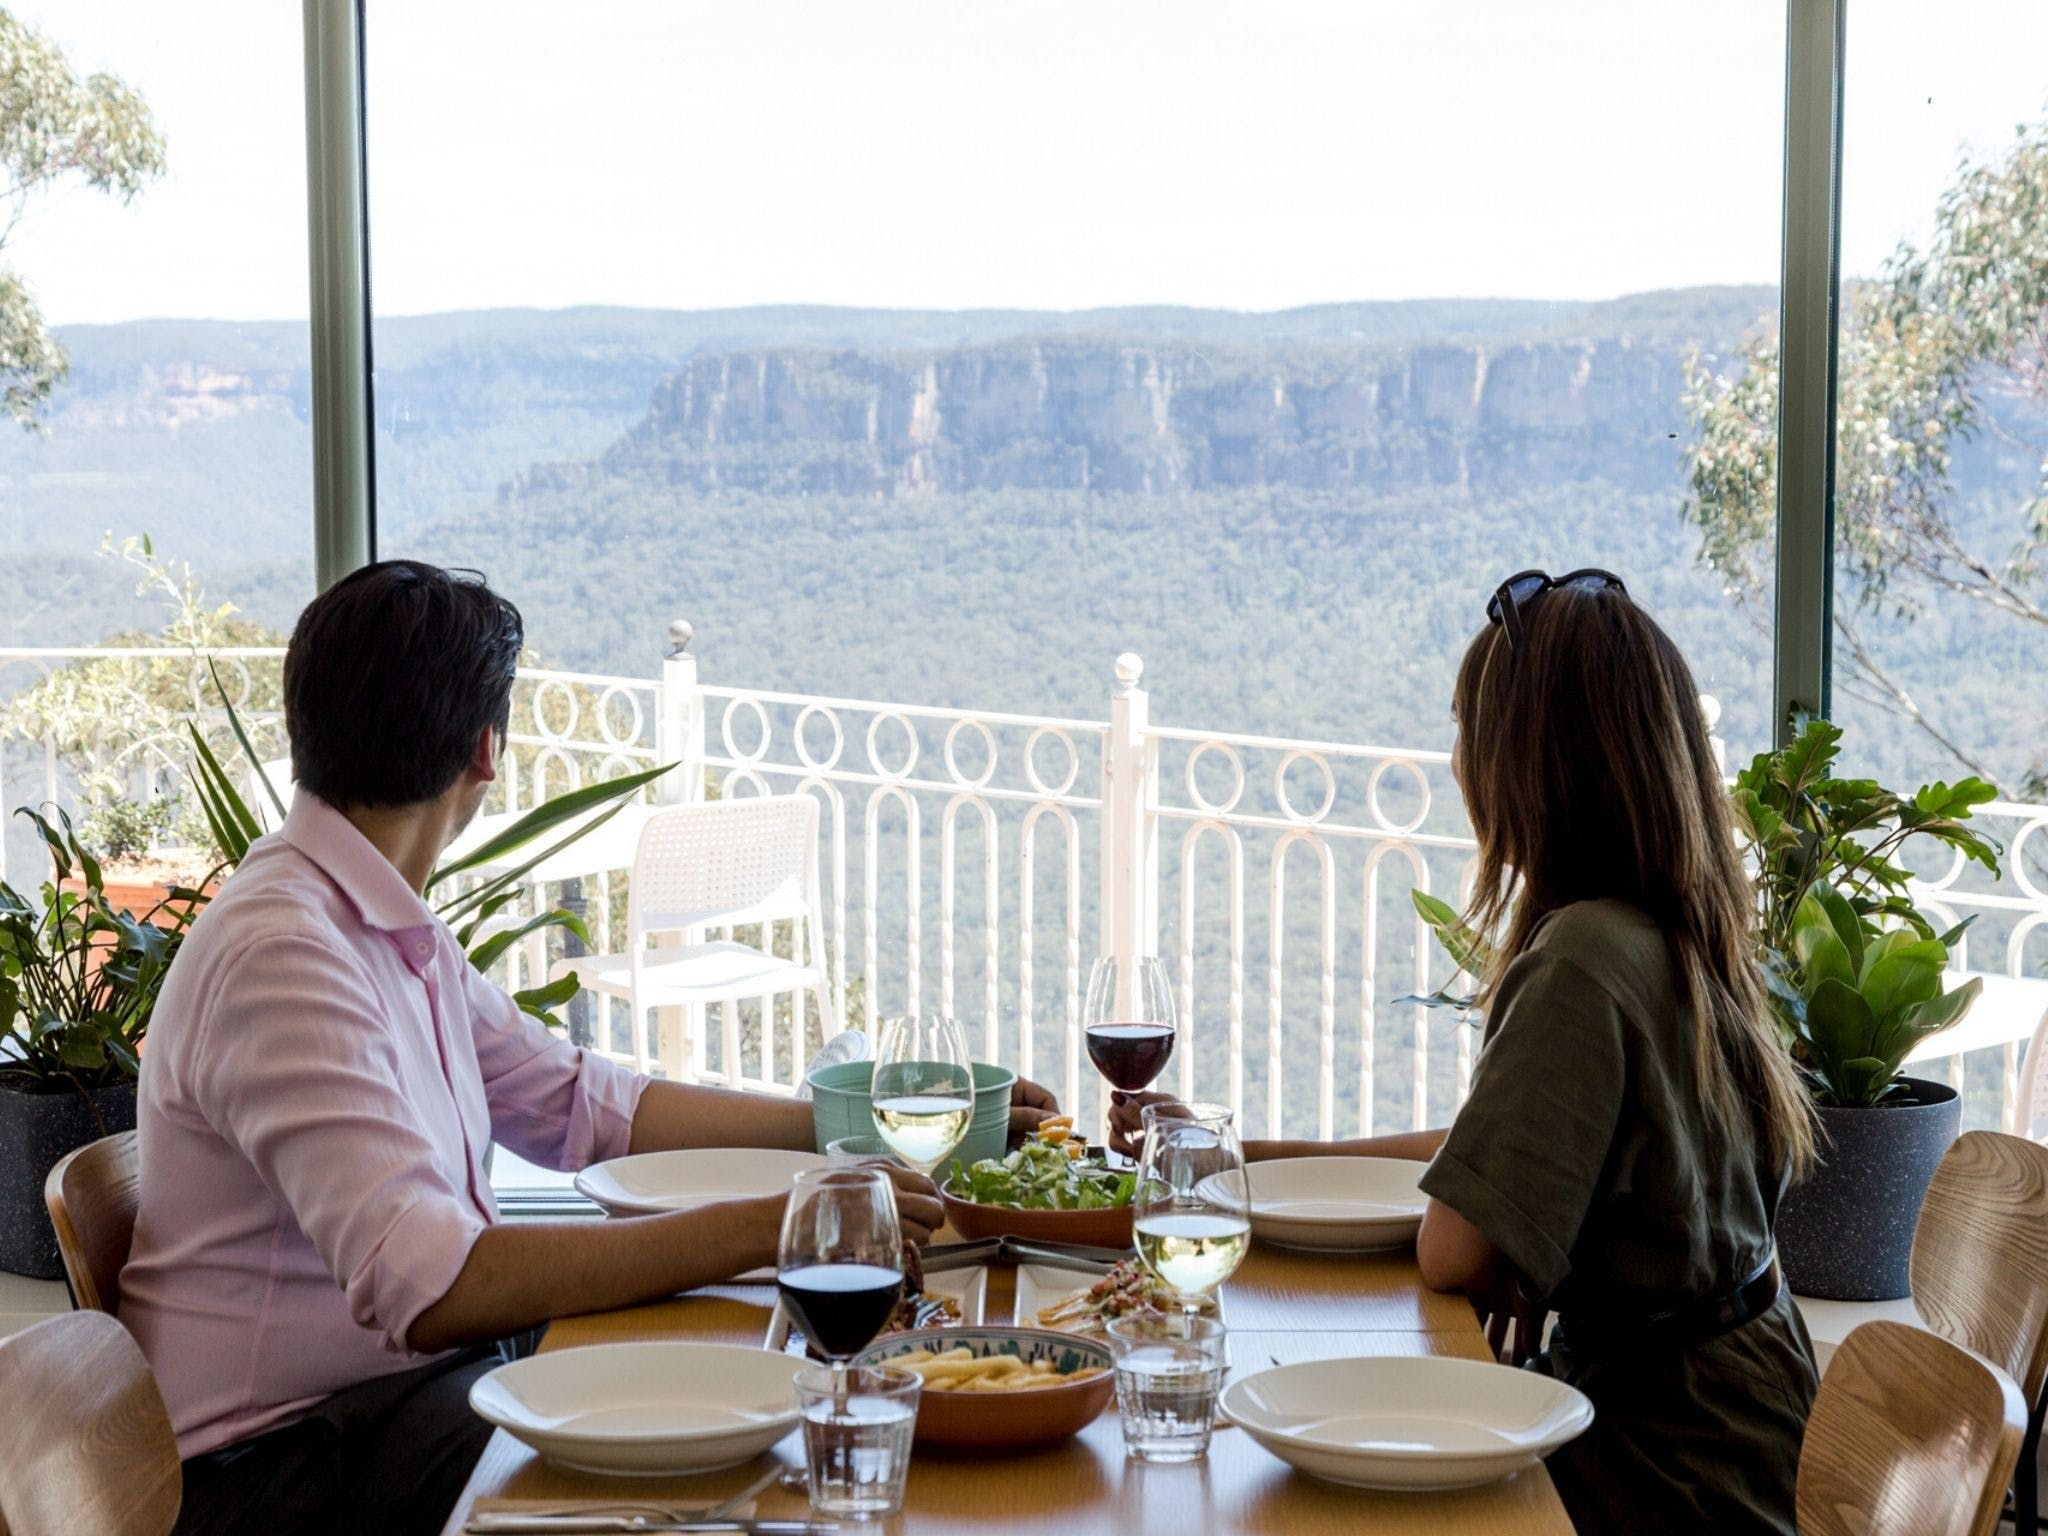 Christmas Day Lunch at The Lookout Echo Point - Port Augusta Accommodation